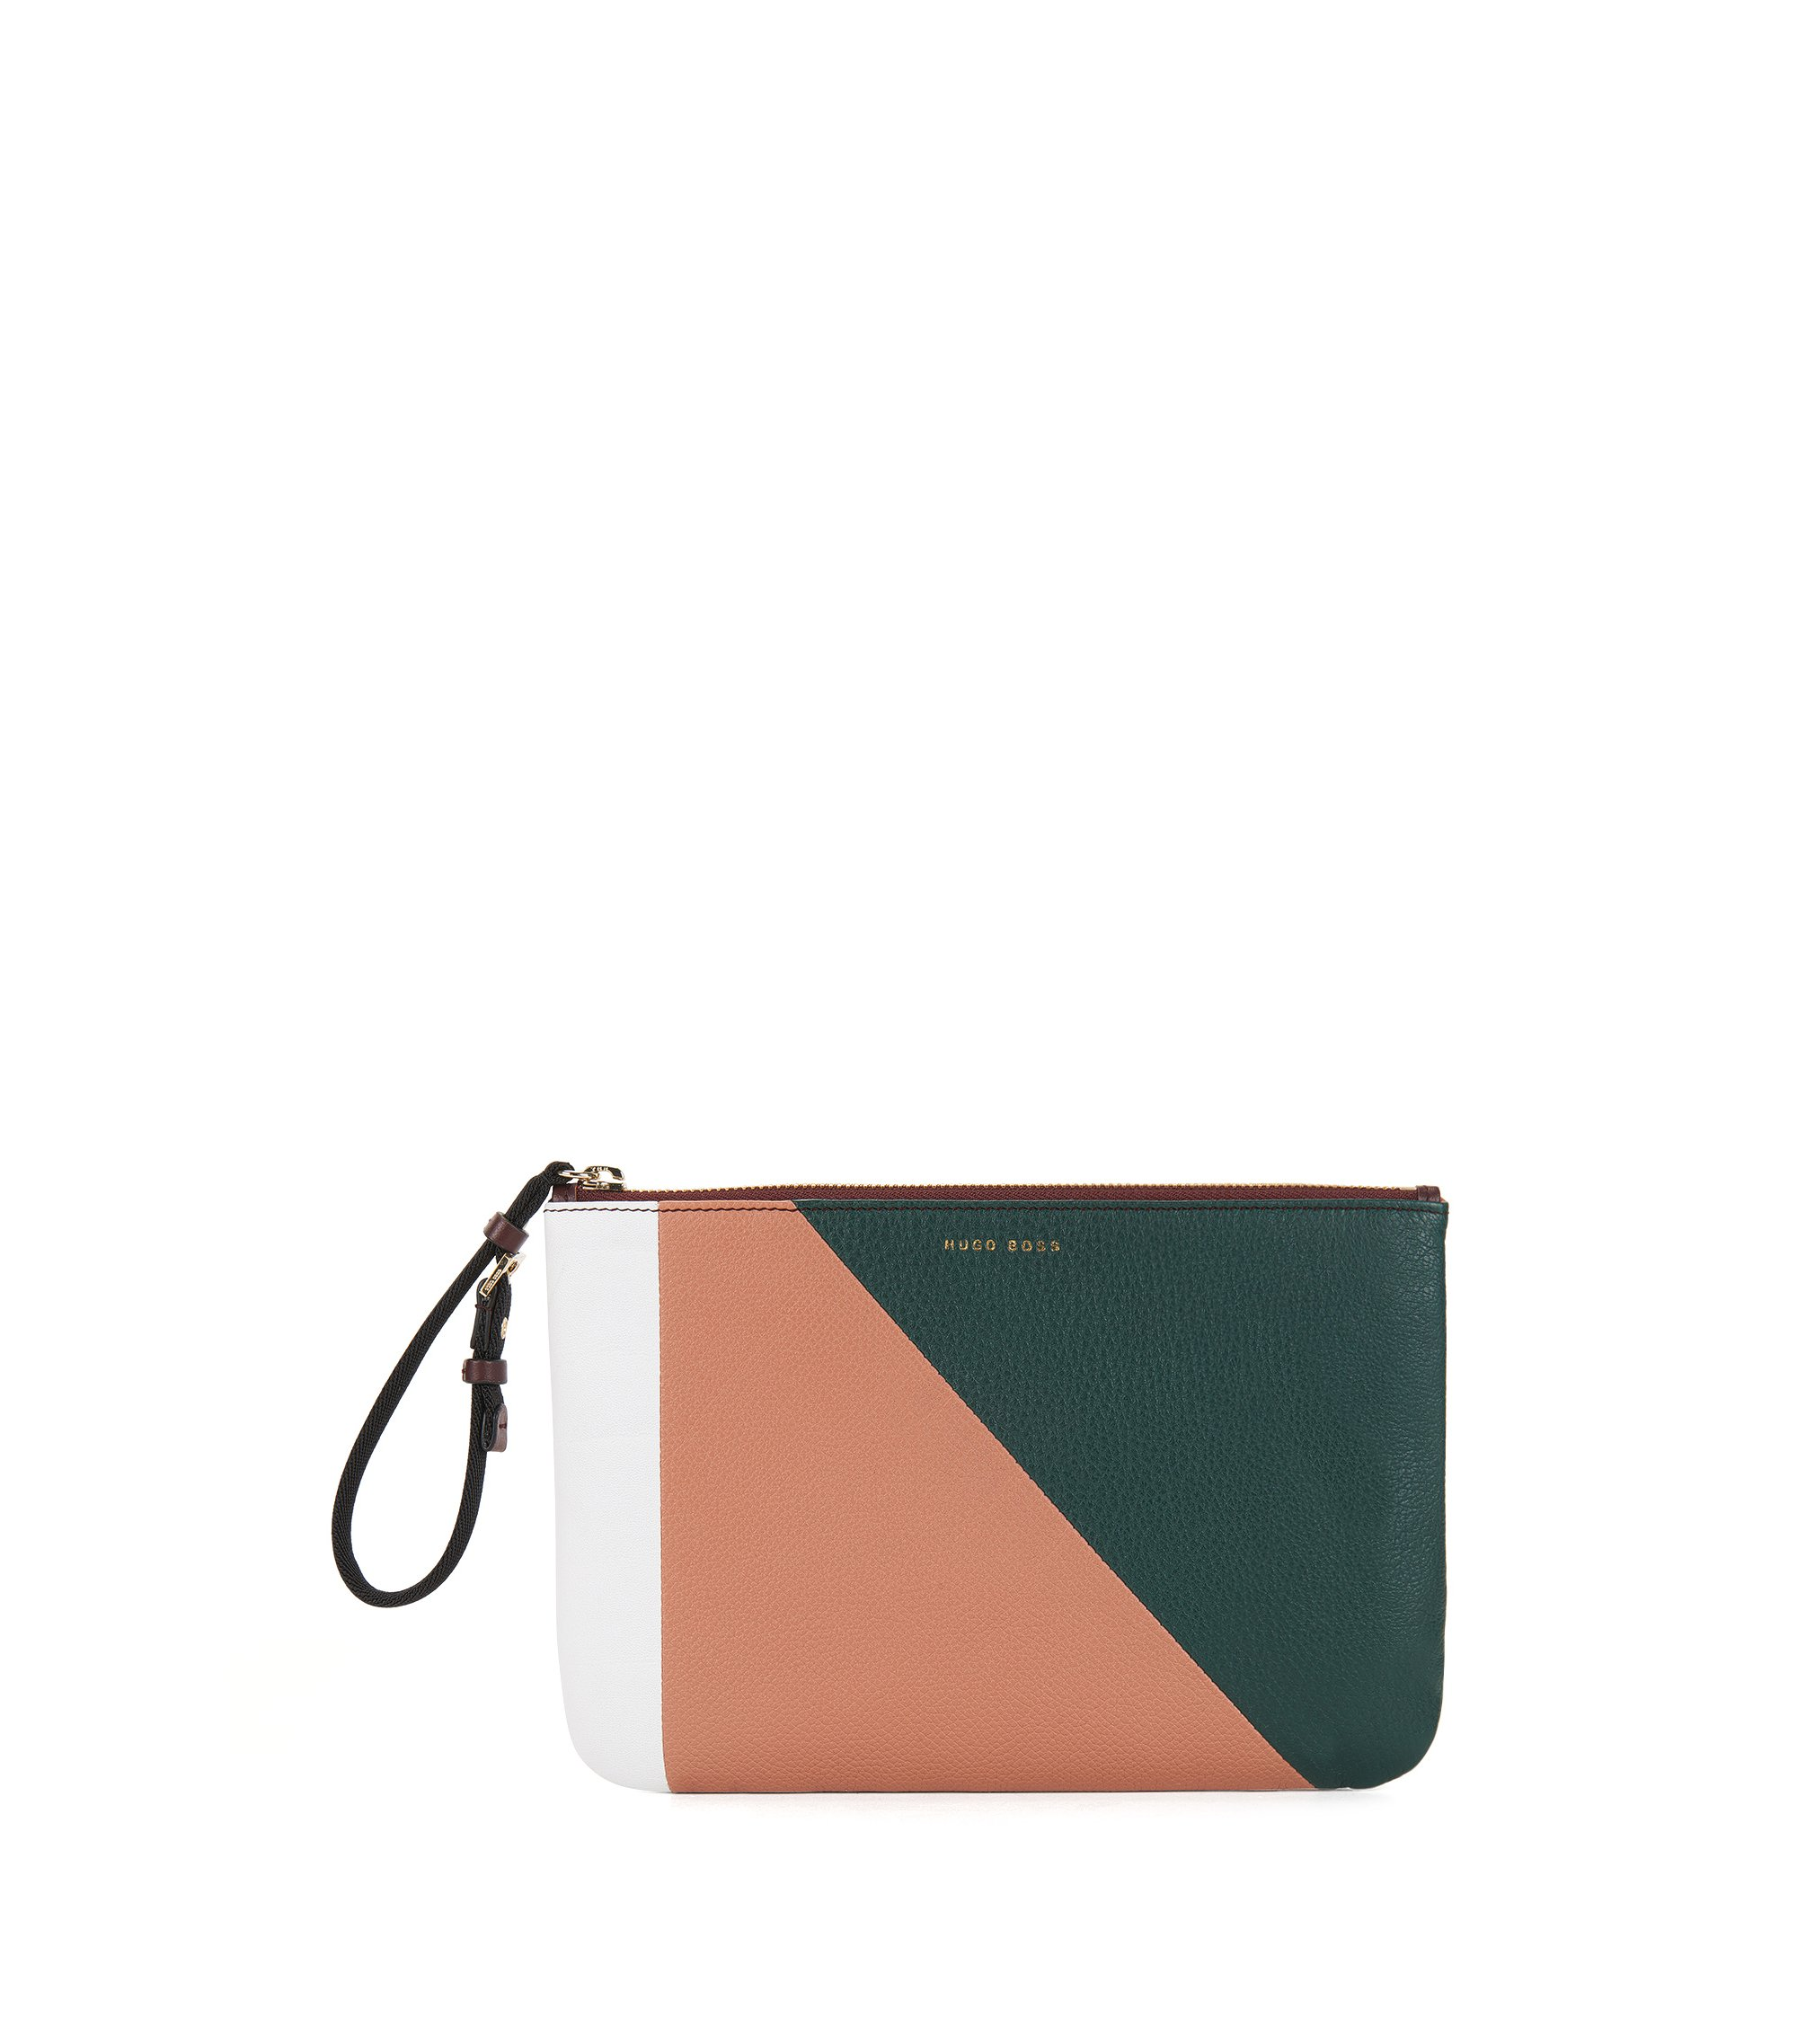 Pochette color block en cuir italien, Fantaisie